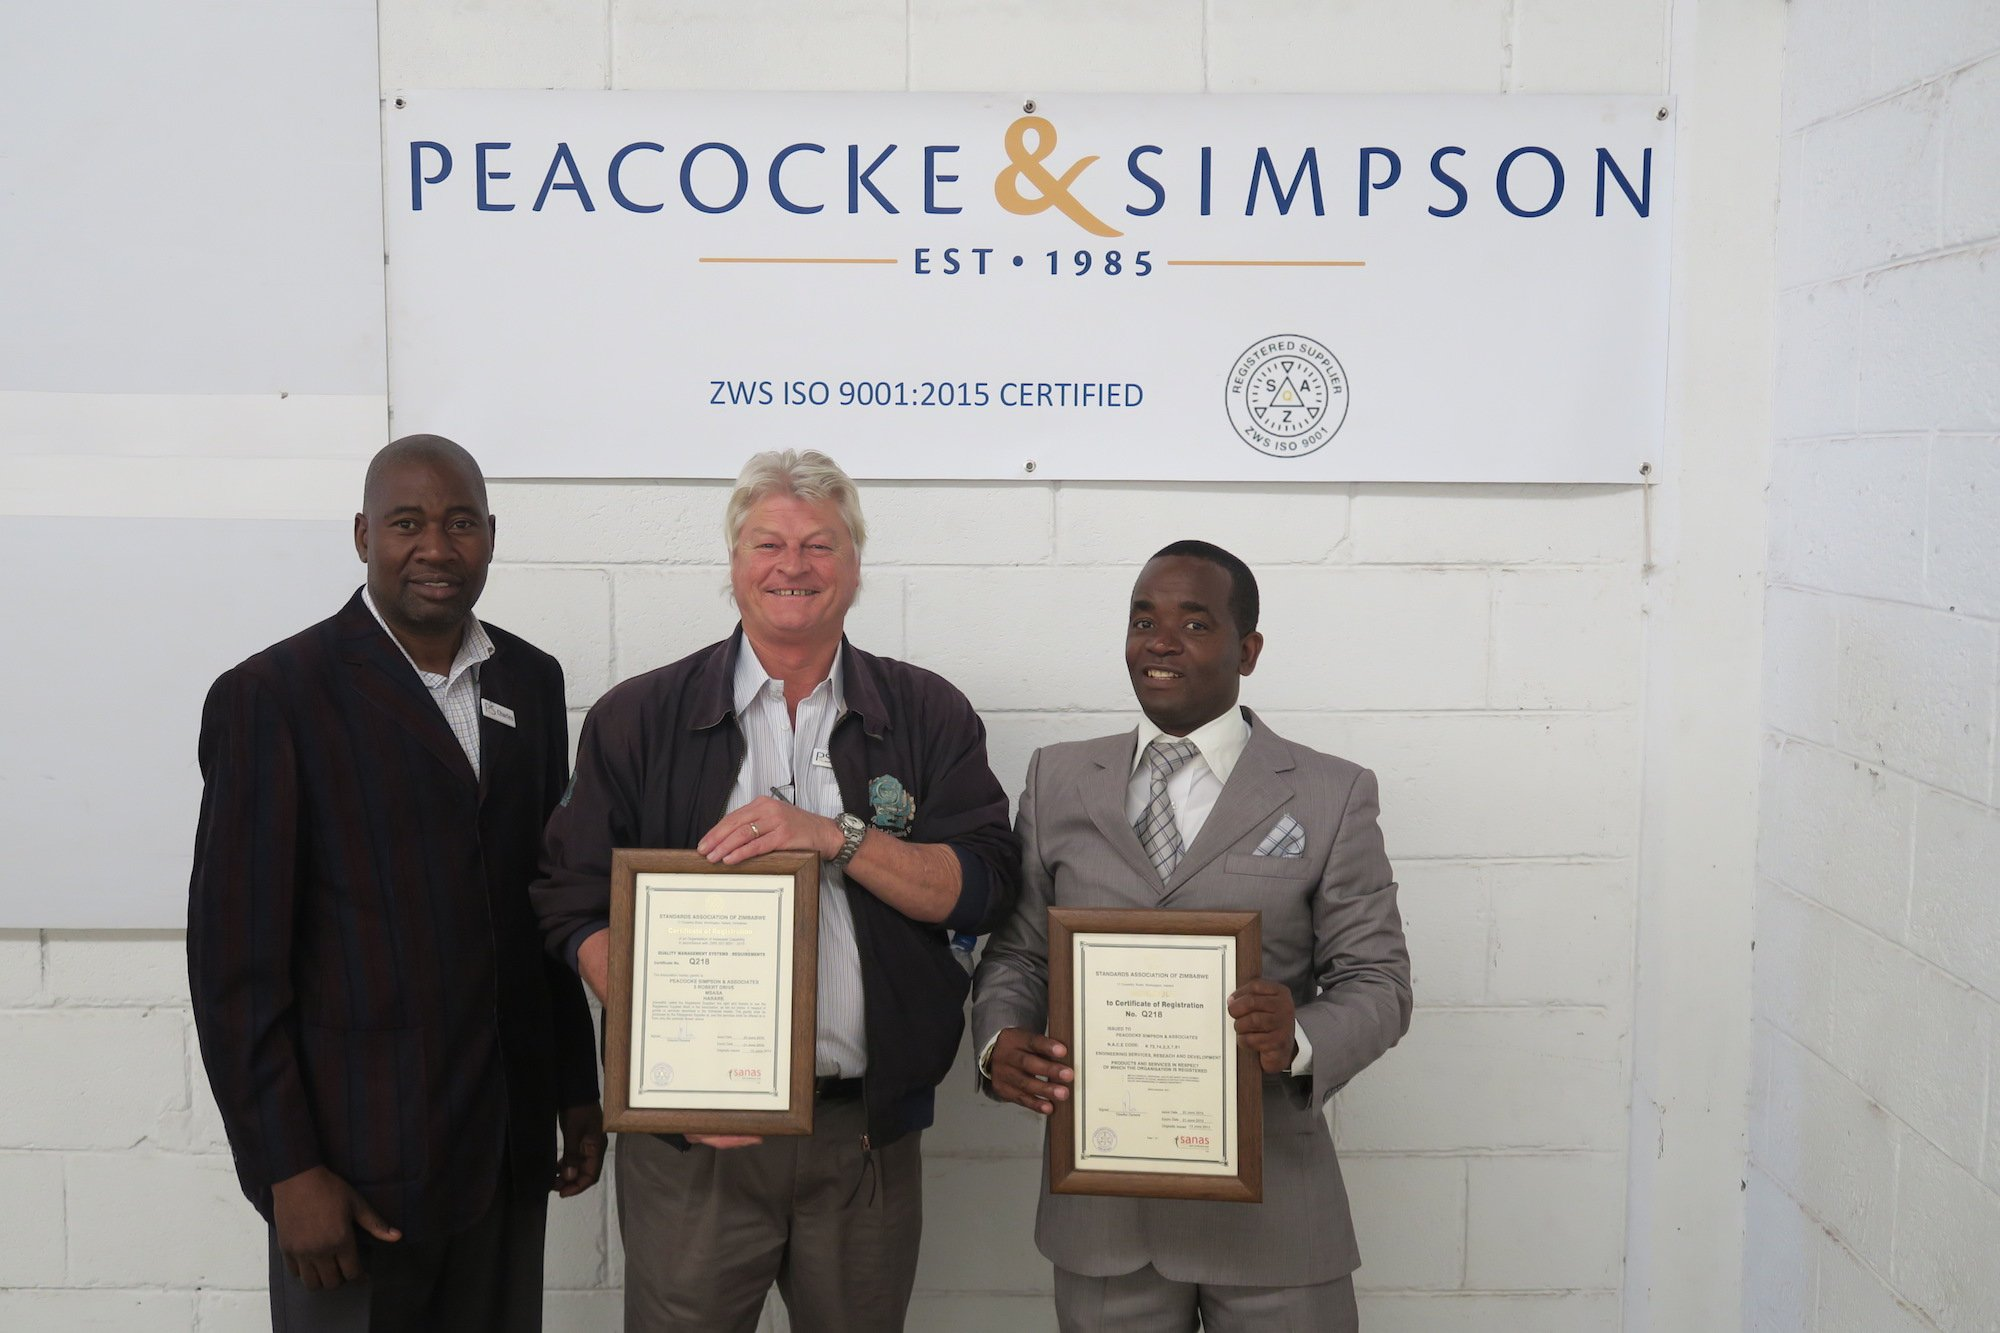 Peacocke & Simpson certificates of ISO registration